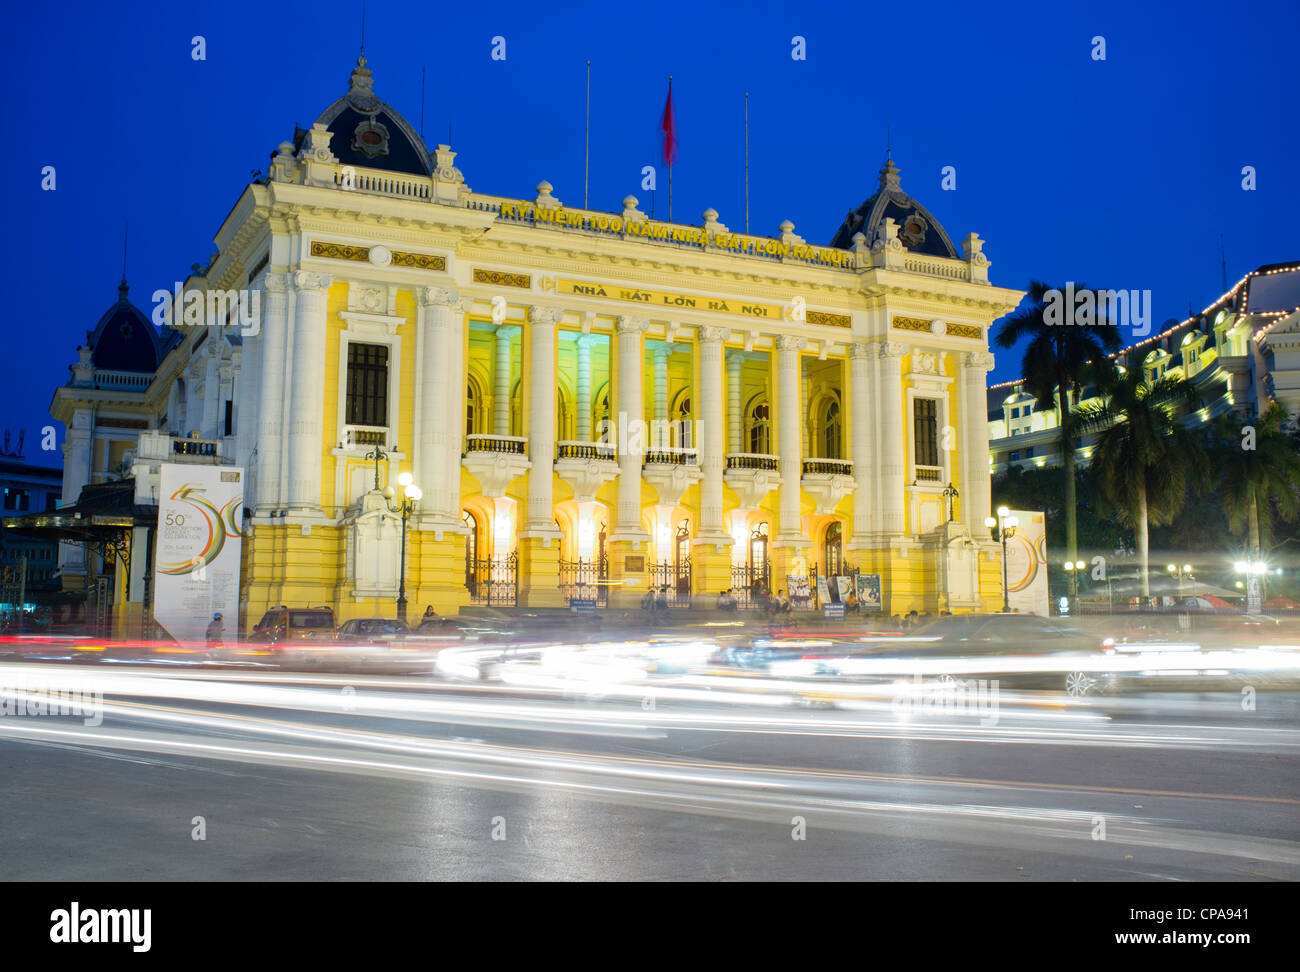 Night view of Hanoi Opera House with traffic Vietnam - Stock Image